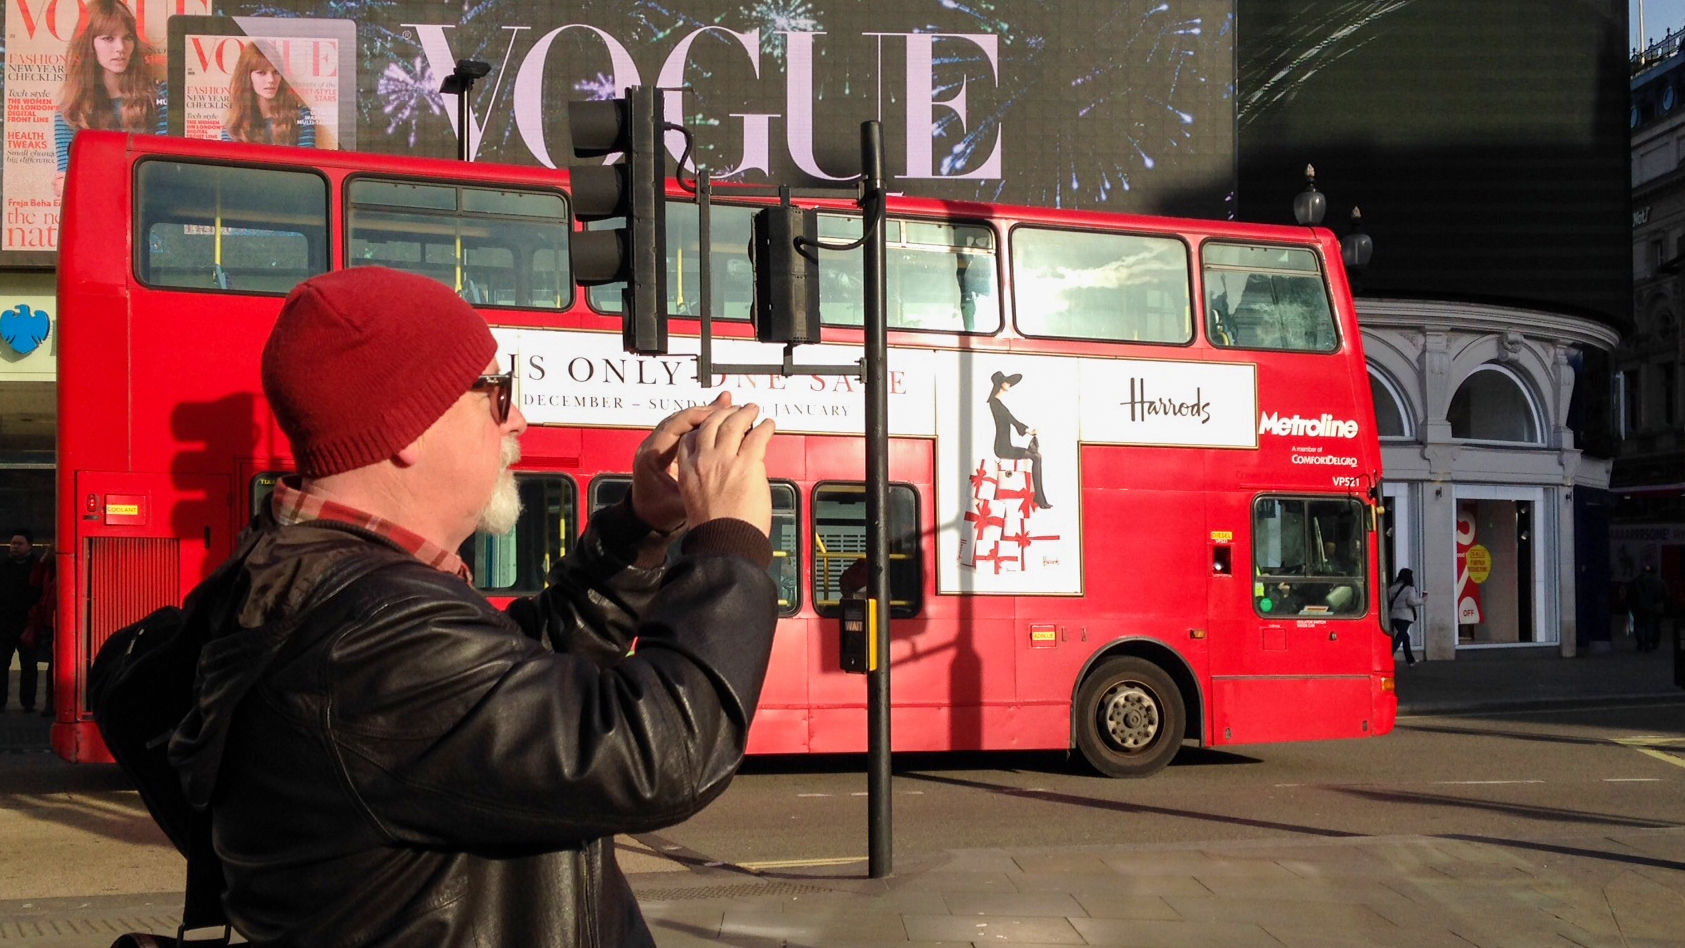 Adrian McGarry taking iPhone images on the streets of London